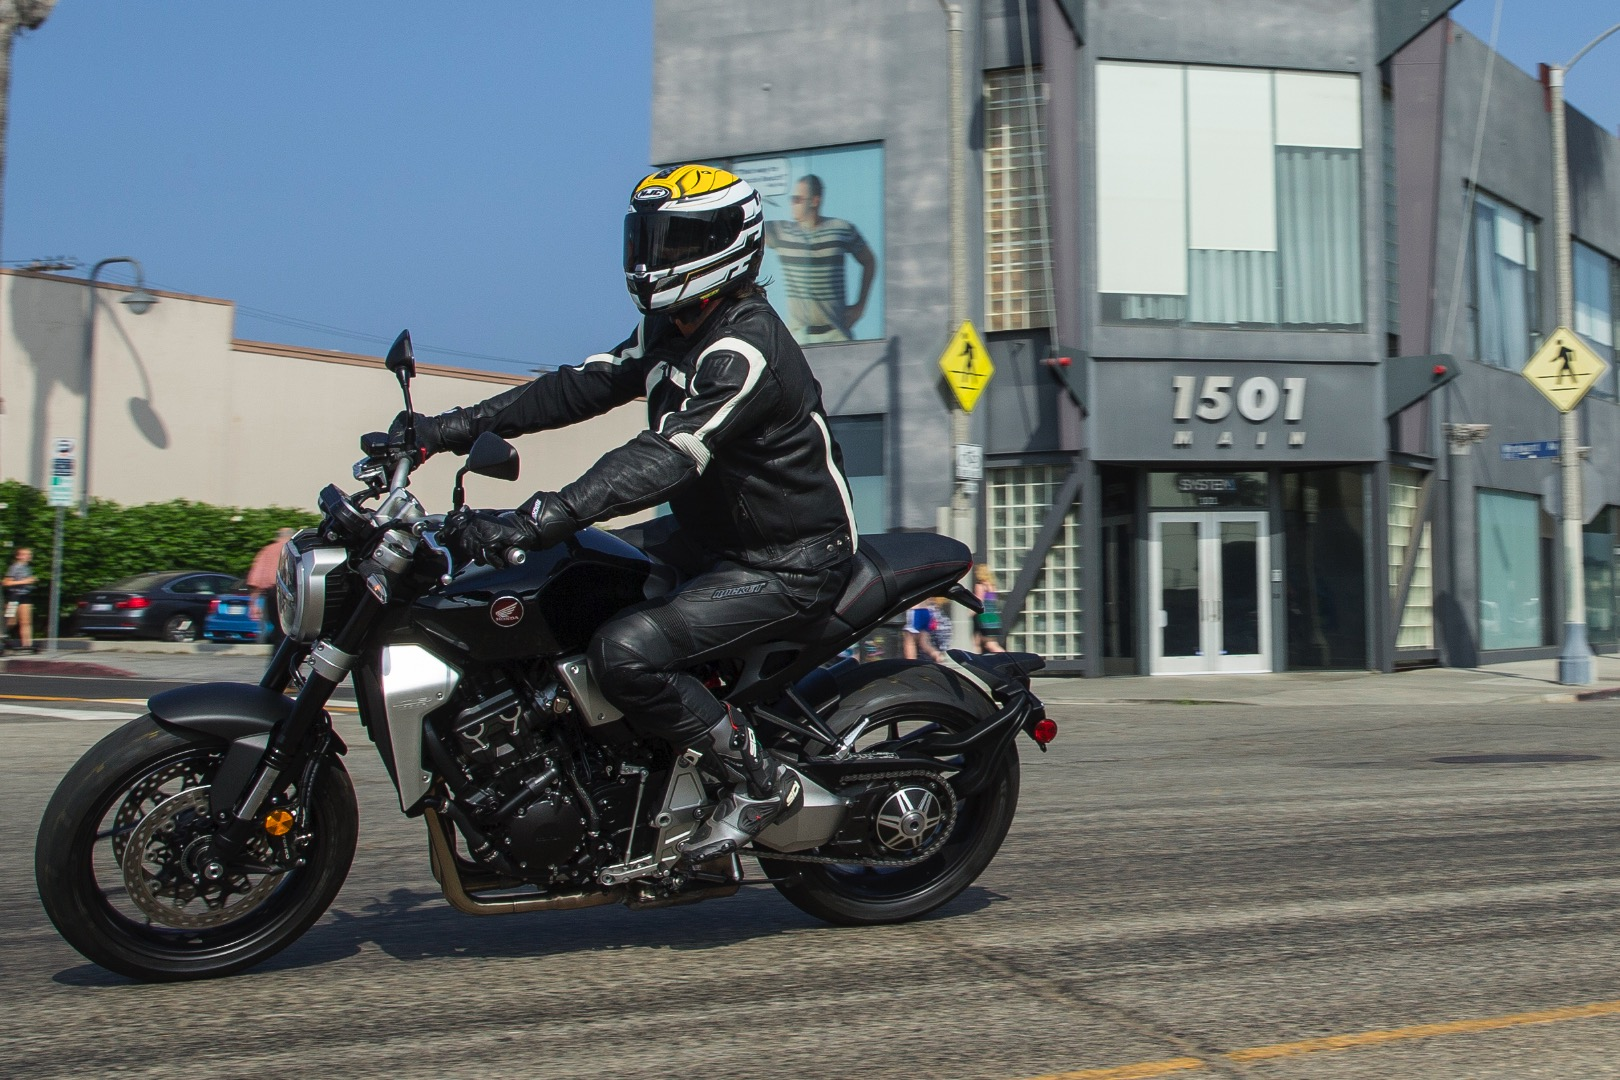 2018 Honda CB1000R Review - Venice Motorcycle